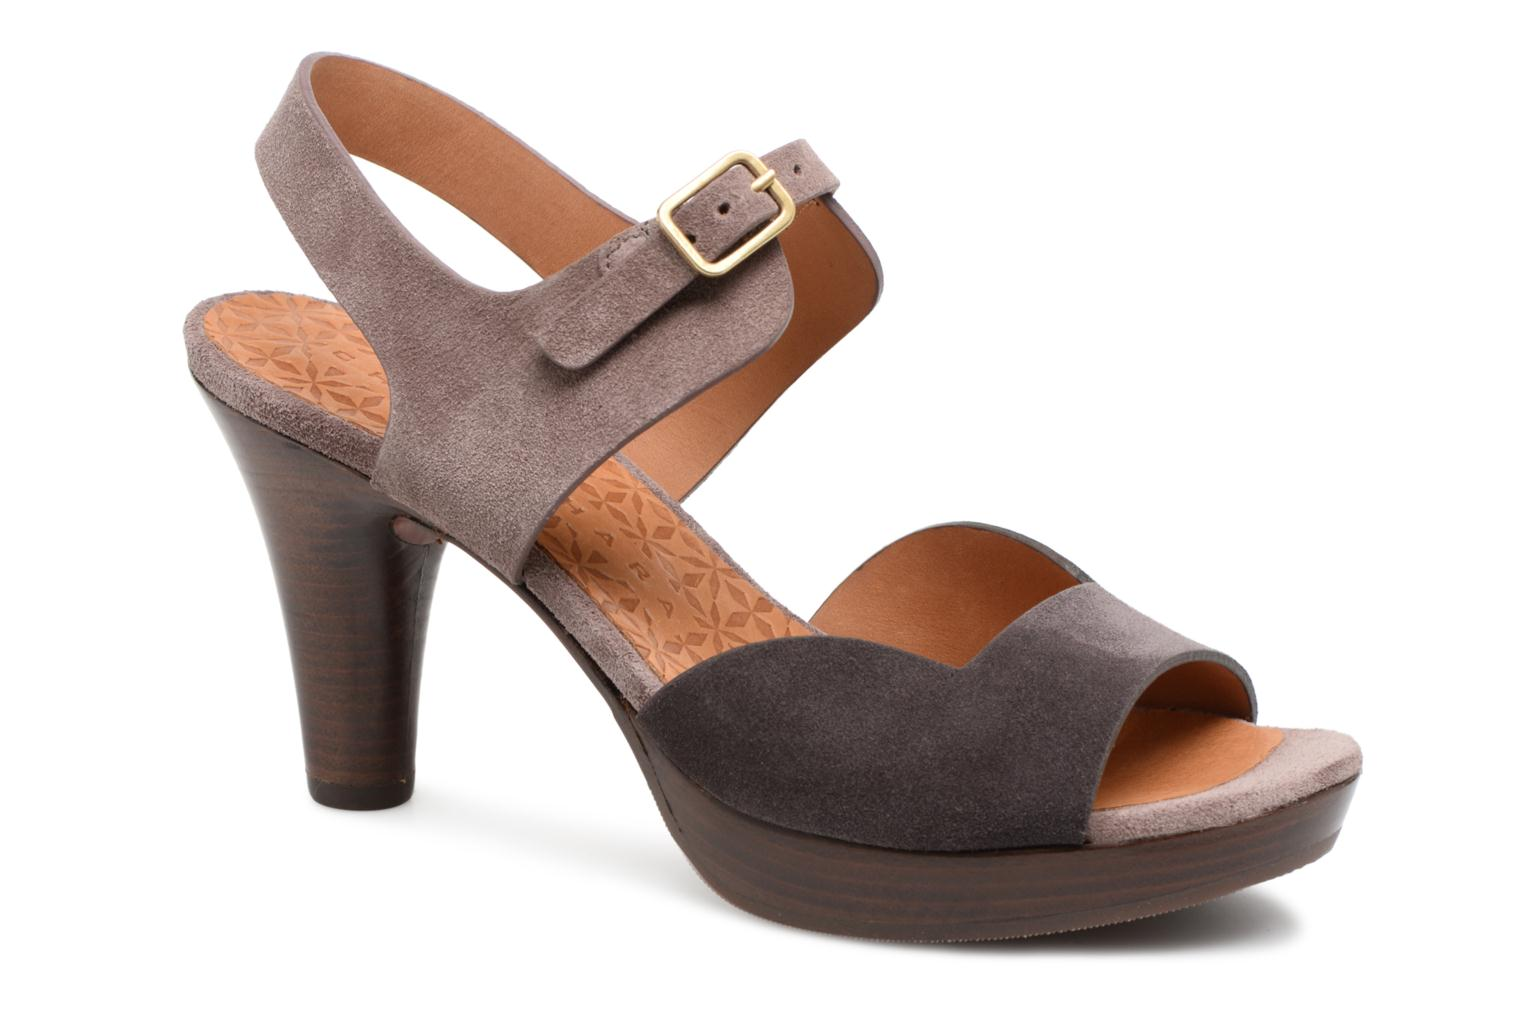 Marques Chaussure luxe femme Chie Mihara femme Loteria32 jean carbon + jean lavanda